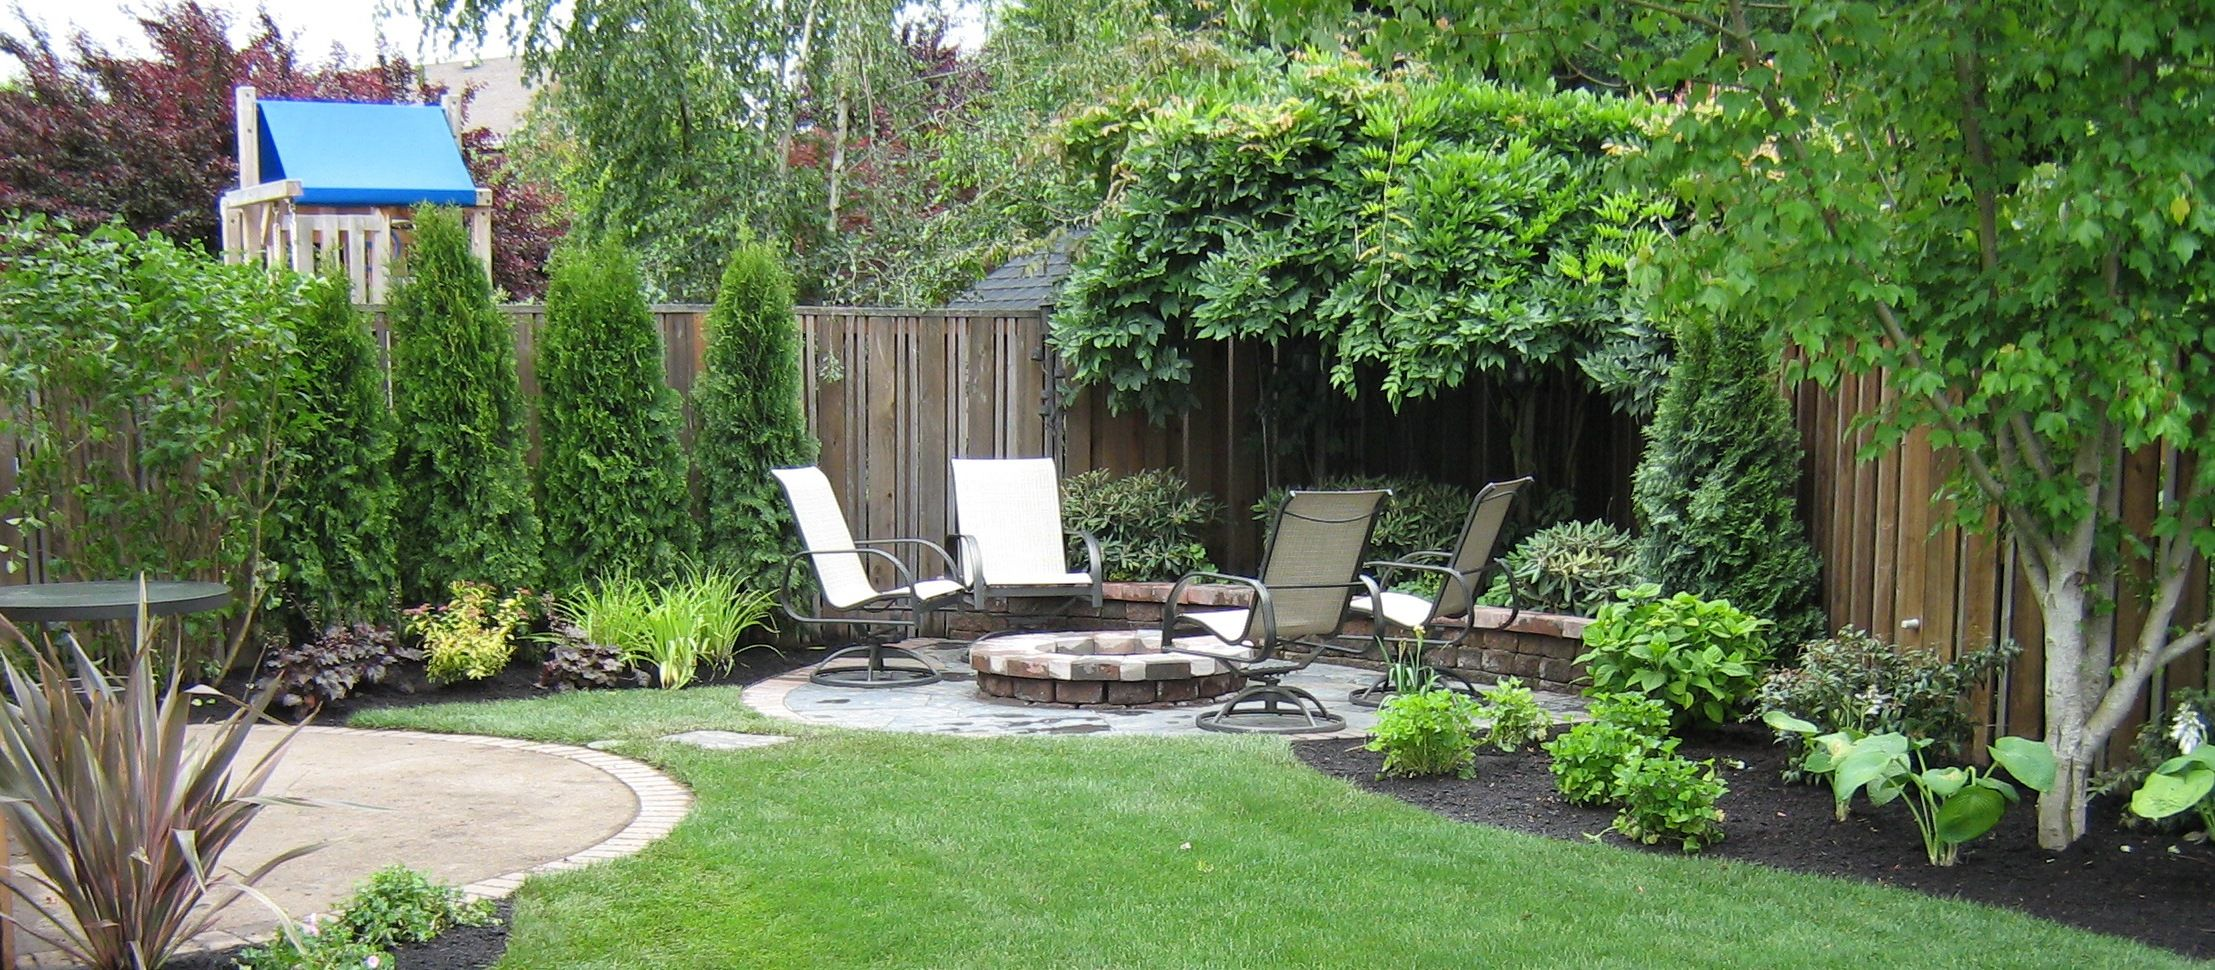 Small backyard landscaping ideas photos garden design for Small backyard garden